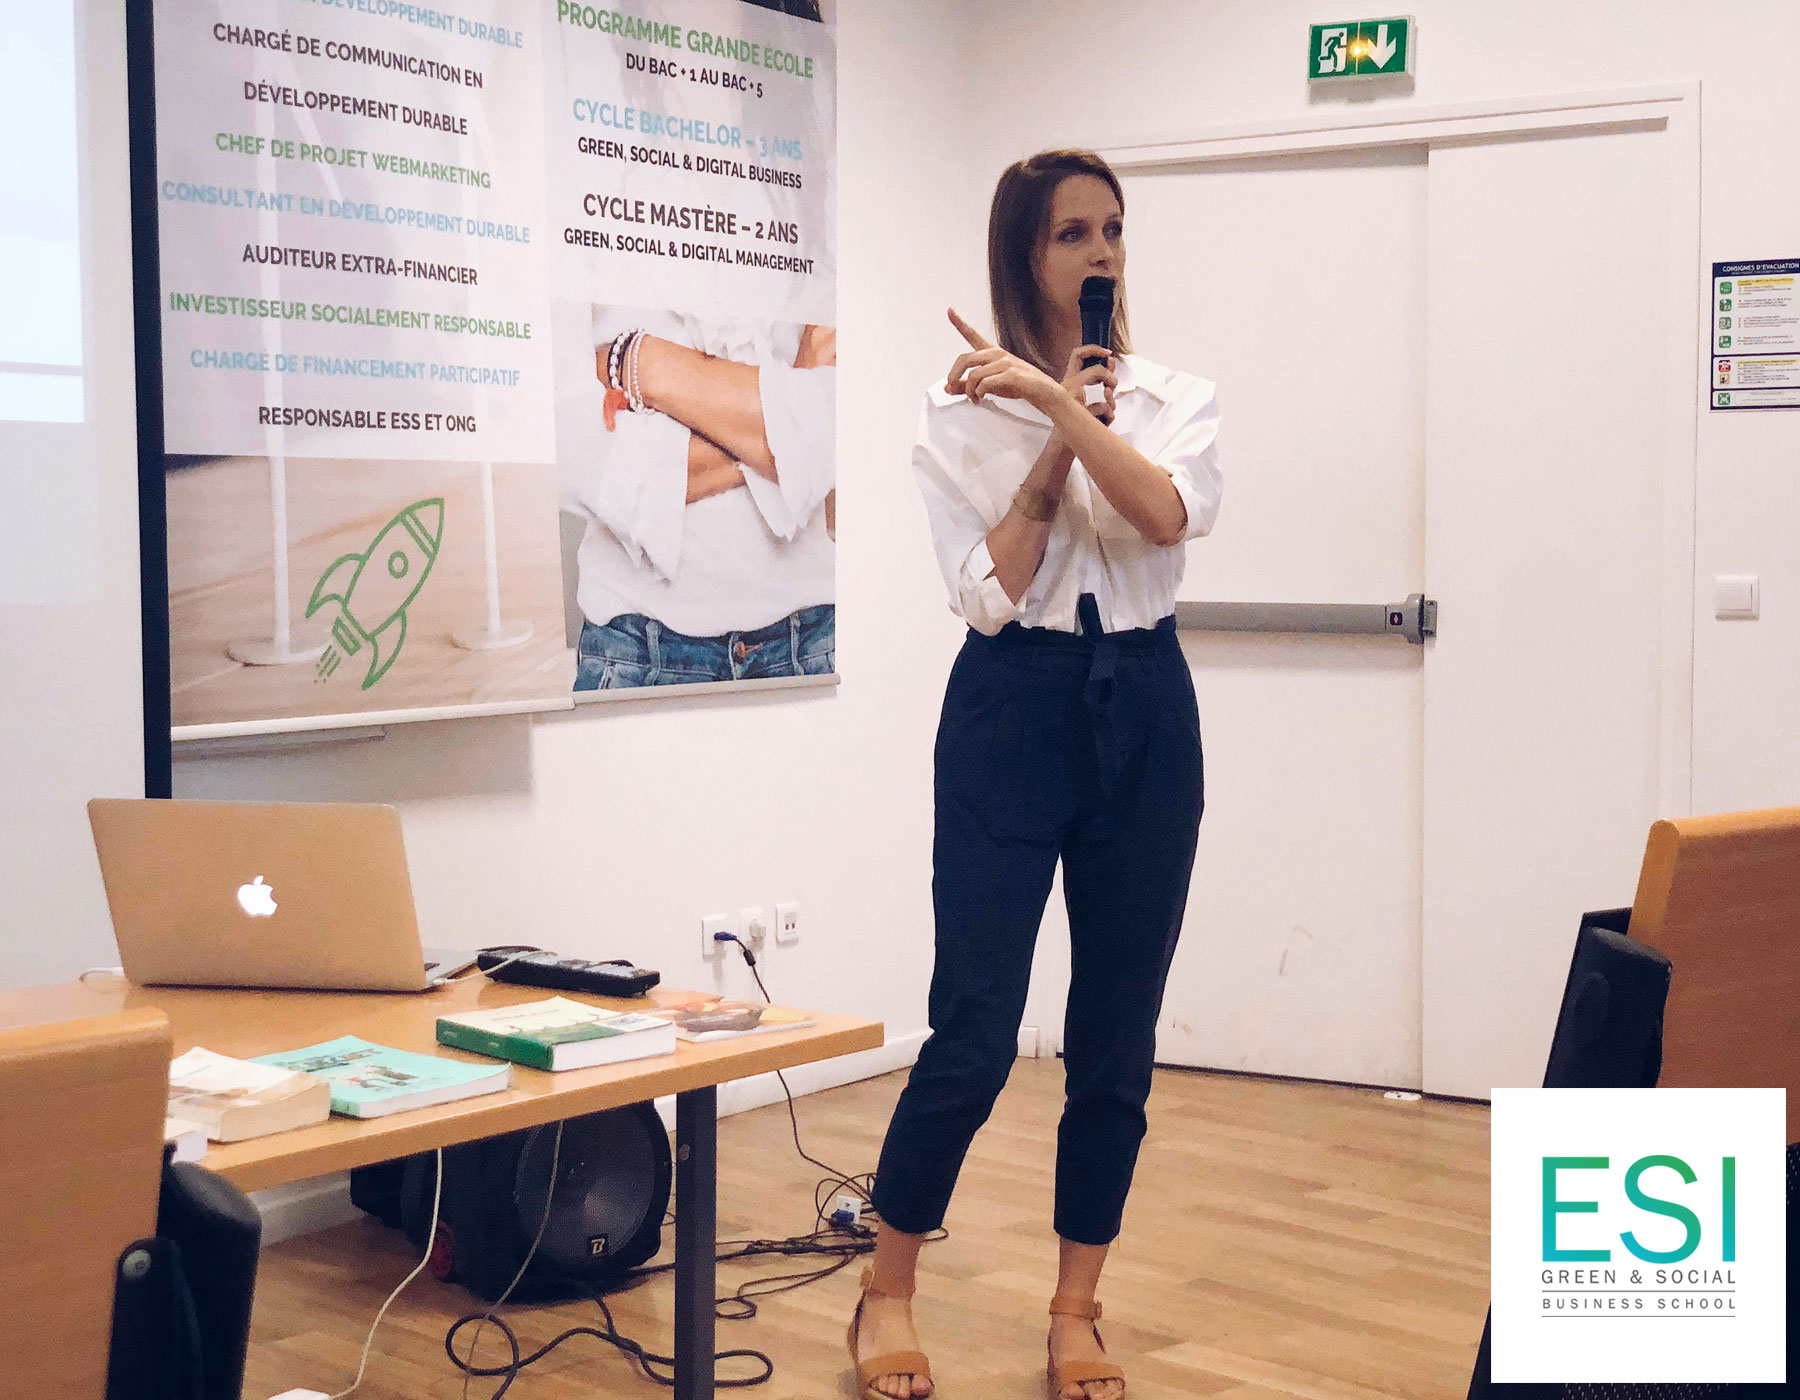 Talk about Zero Waste and sustainability at ESI Business School - France - June 2019